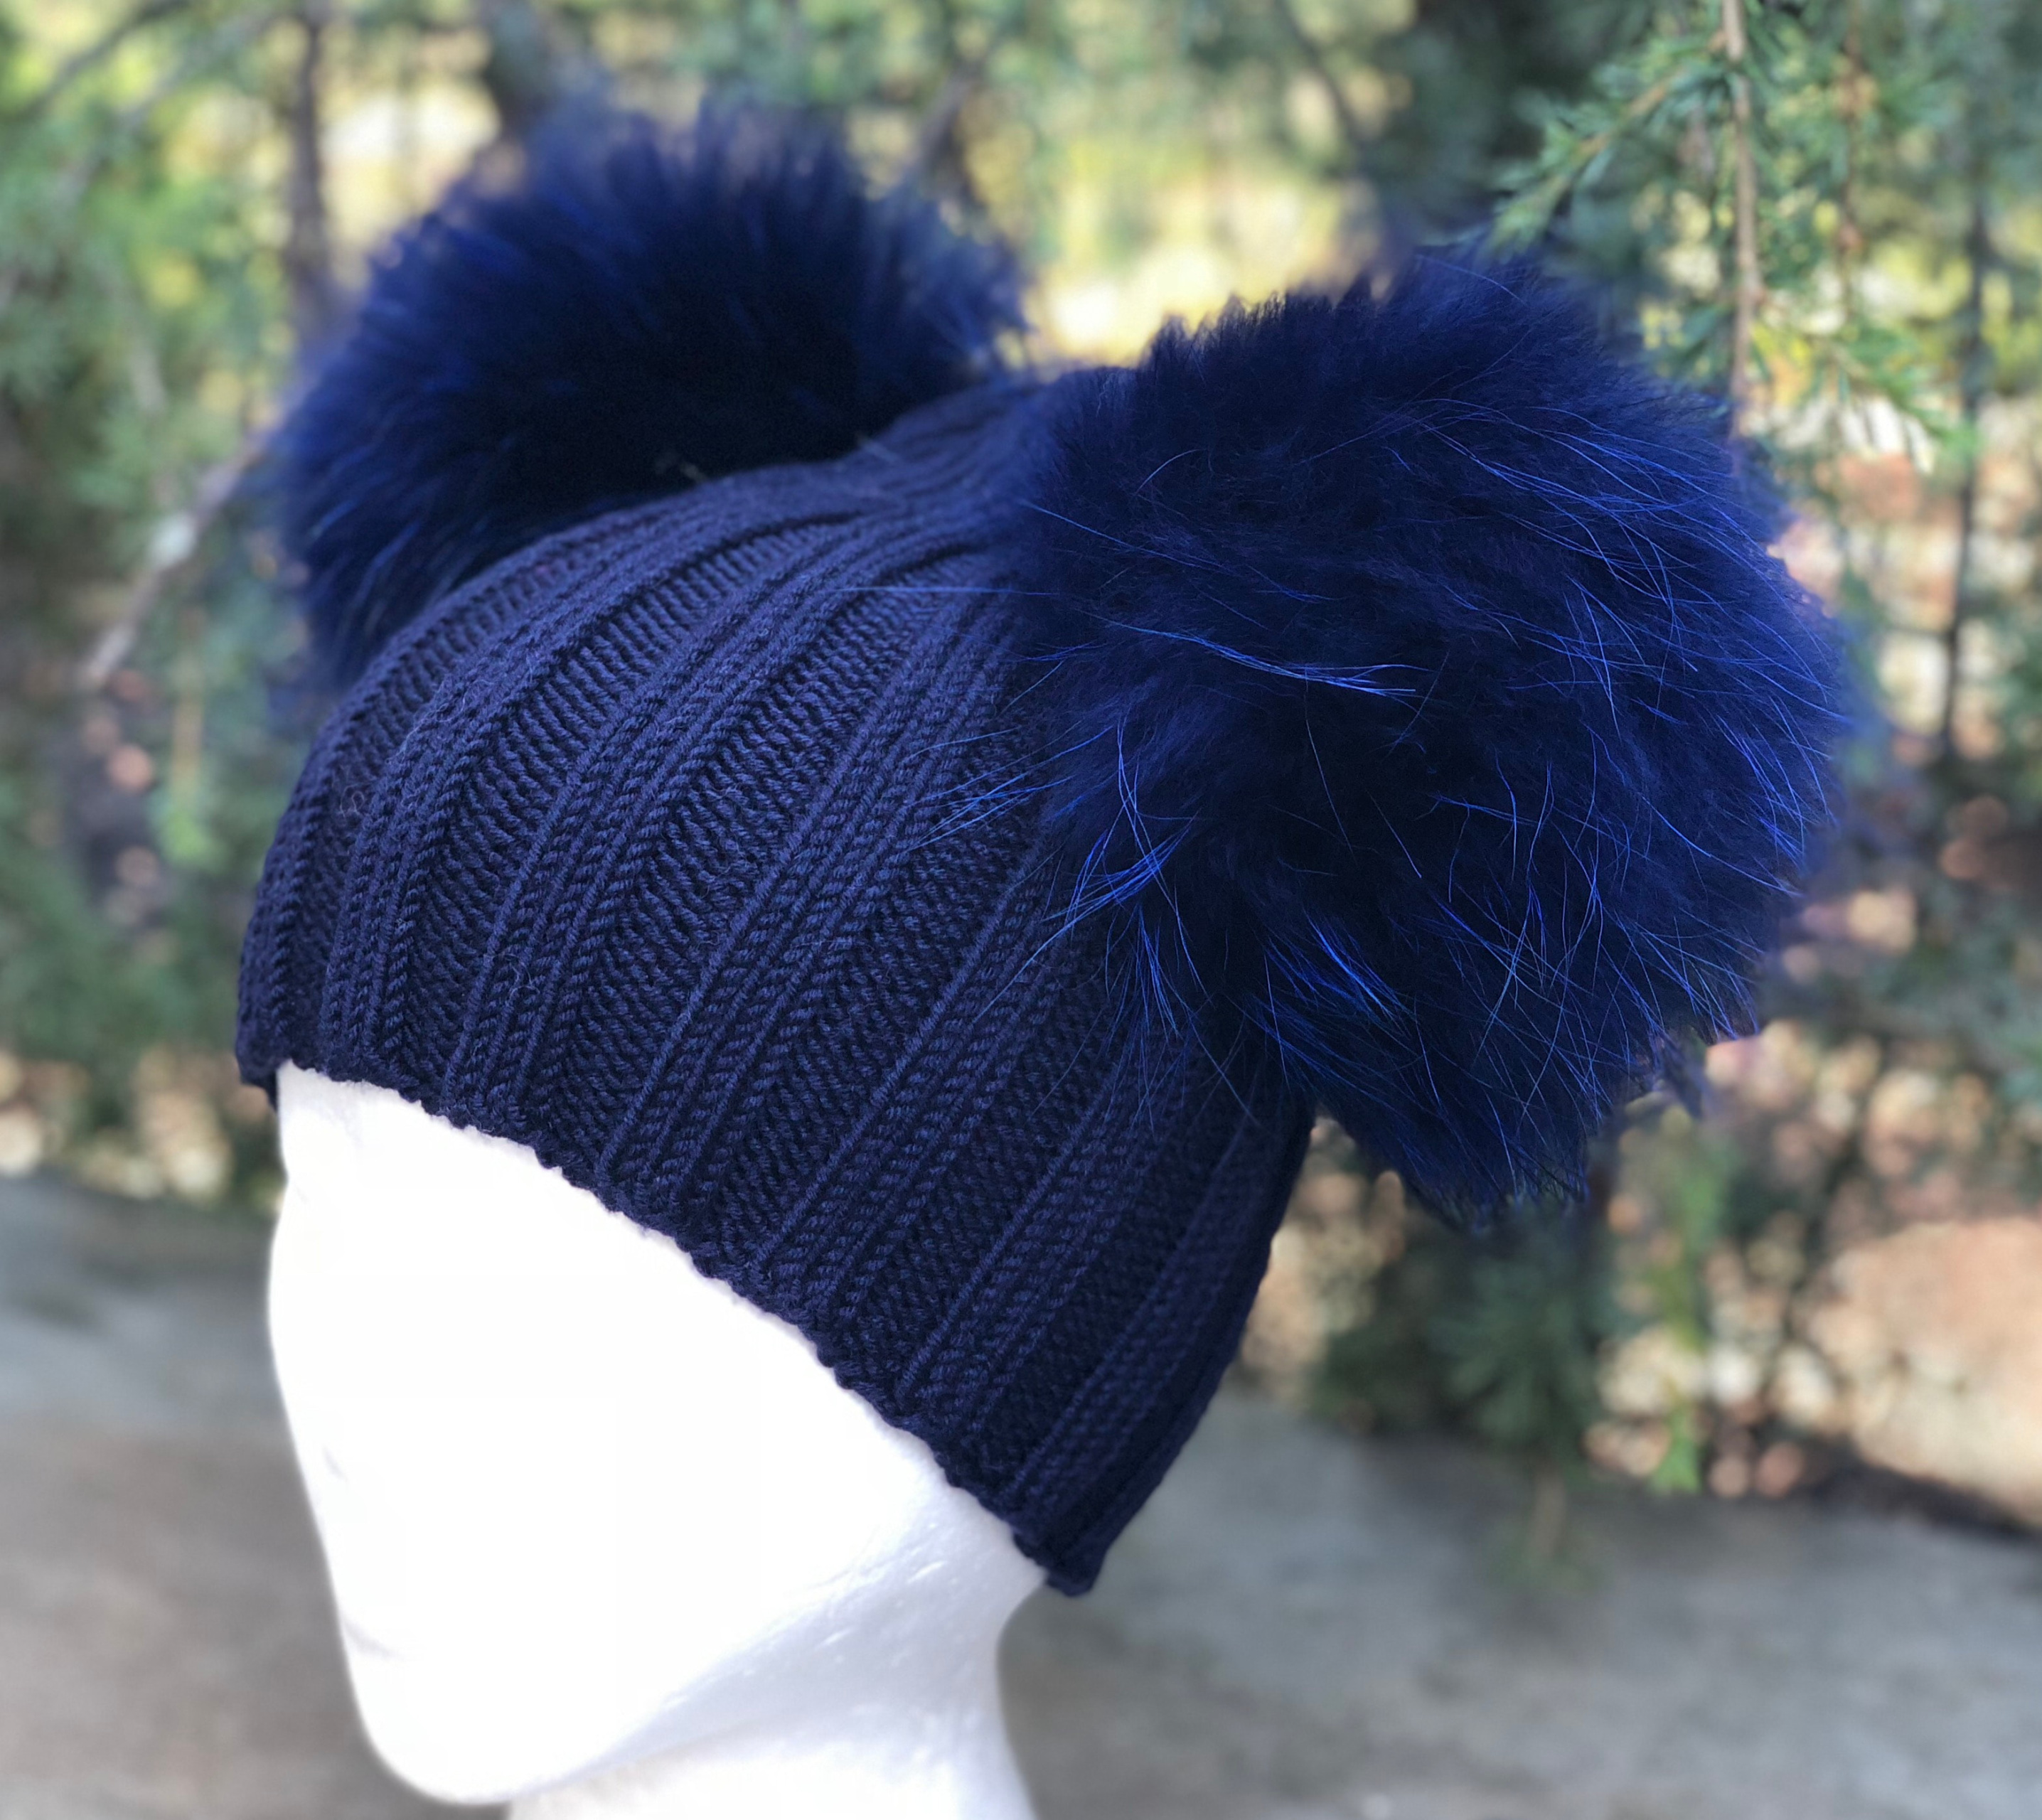 ee680af2282 Ribbed Navy Blue Wool Beanie Hat - Double Raccoon Fur Pom Poms ...